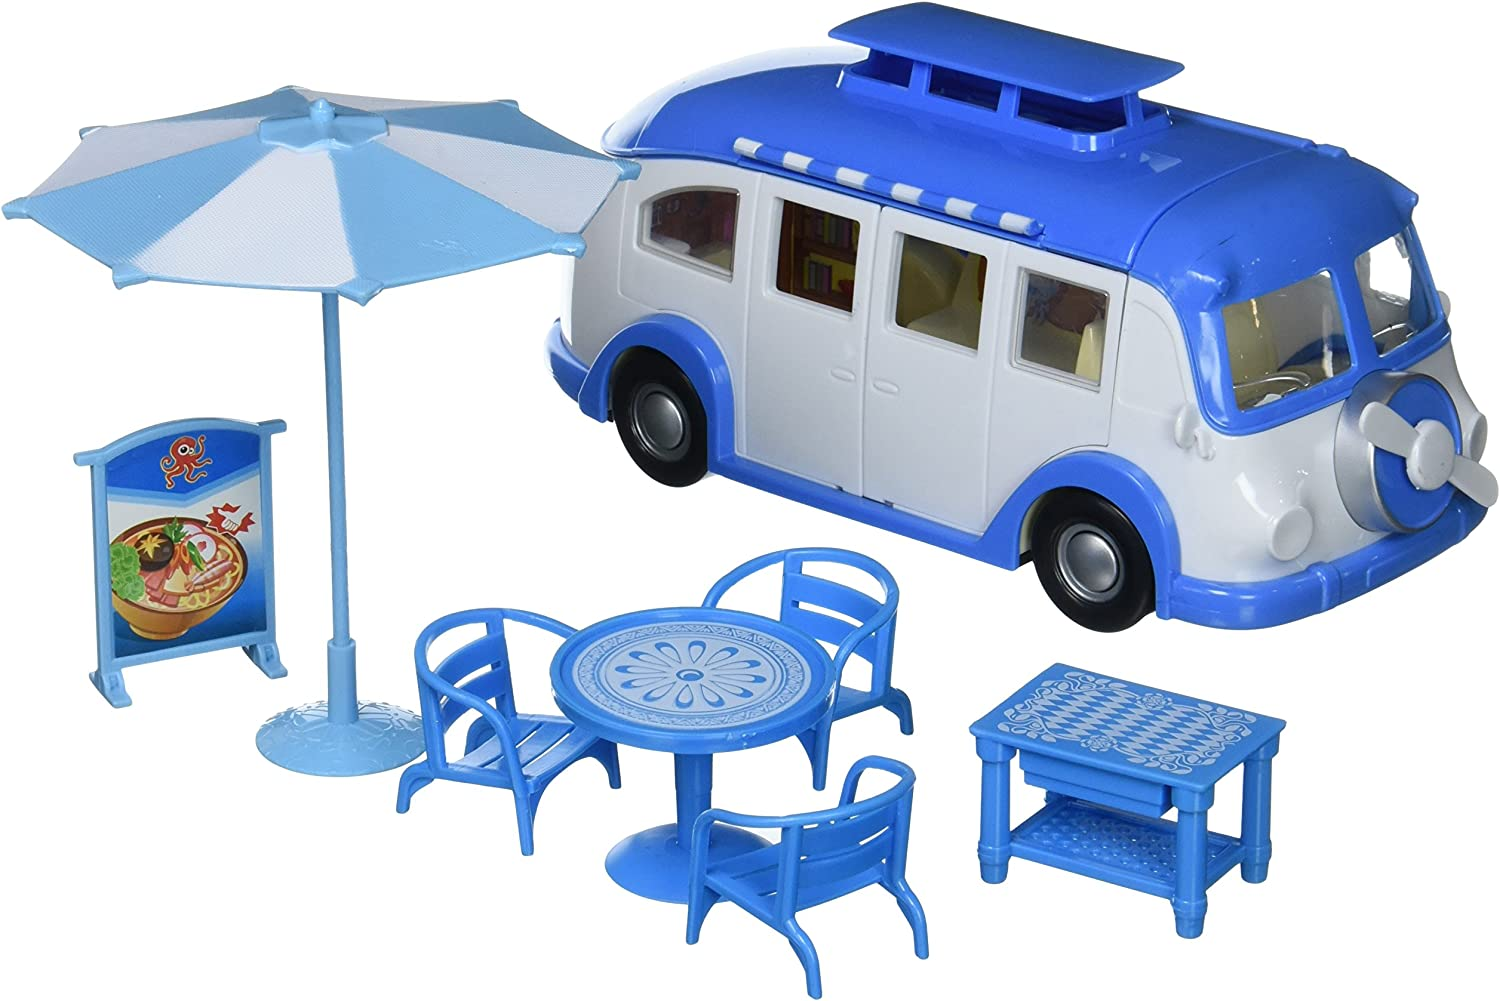 Velocity Toys Good Seafood Food Truck  Designable Toy Food Truck w  Outdoor Tables, Dish Food Replicas, & Design Stickers